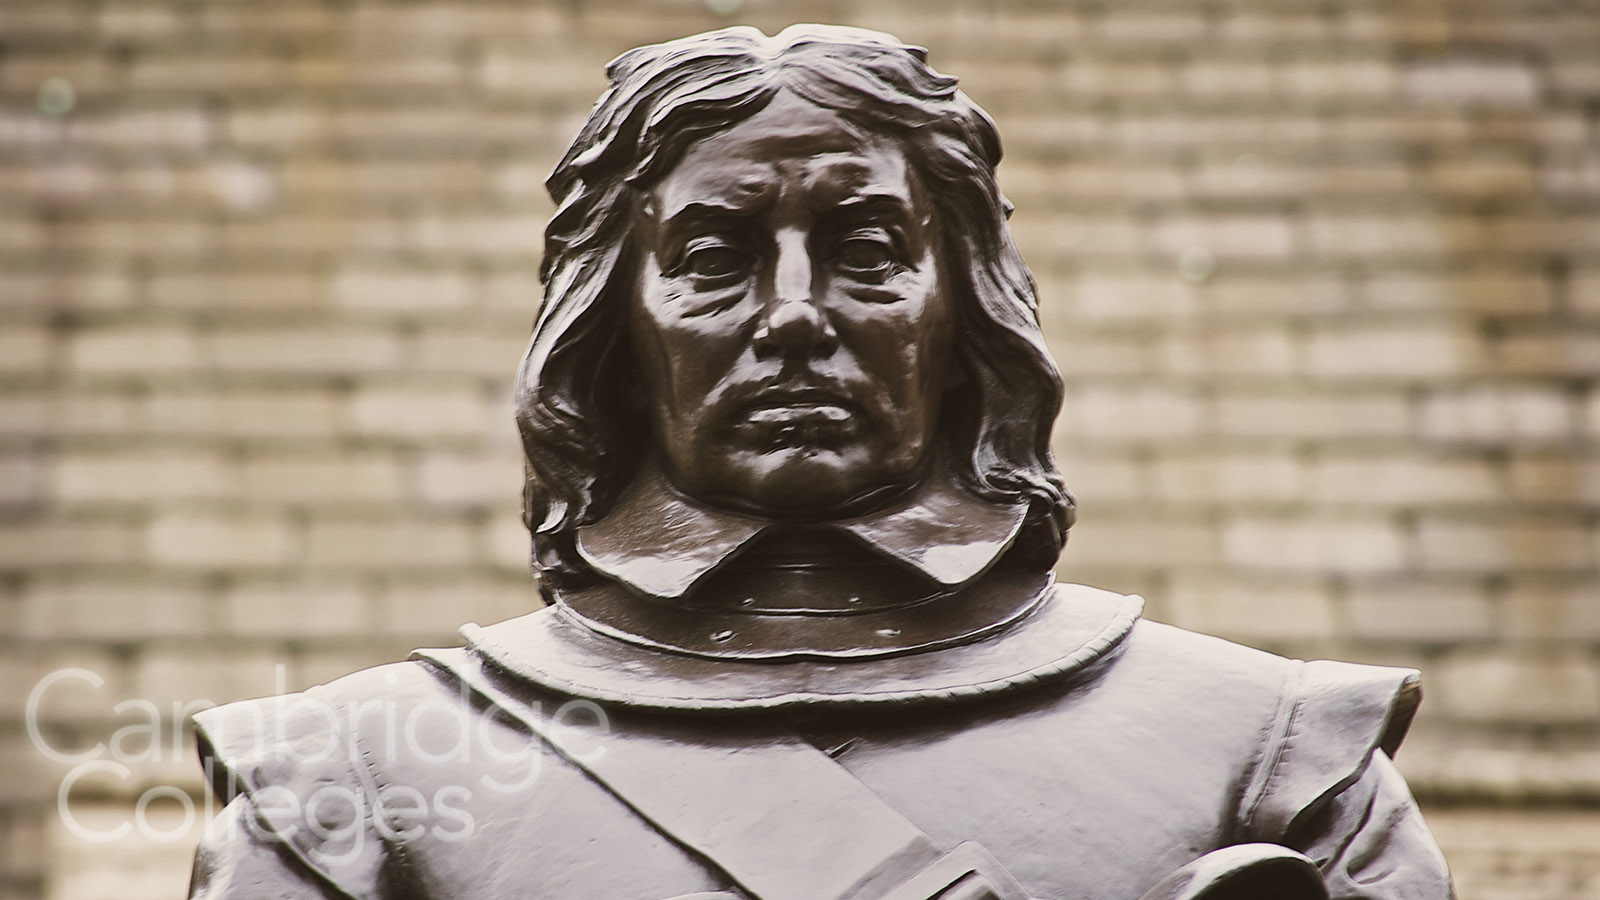 Oliver Cromwell statue By Steve Punter [CC BY-SA 2.0 (https://creativecommons.org/licenses/by-sa/2.0)], via Wikimedia Commons